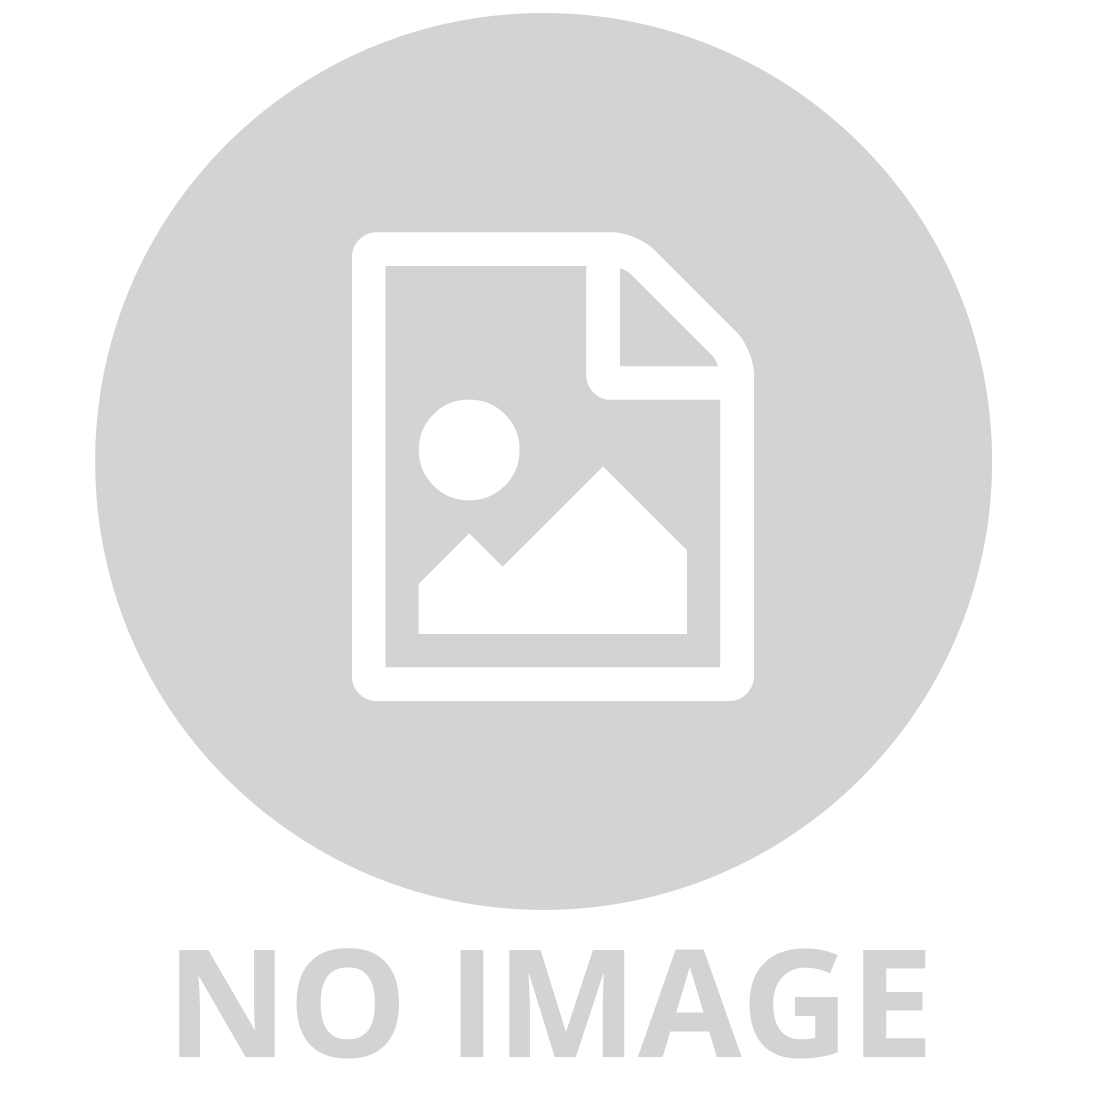 Airbus 200 Round Covers - Group image